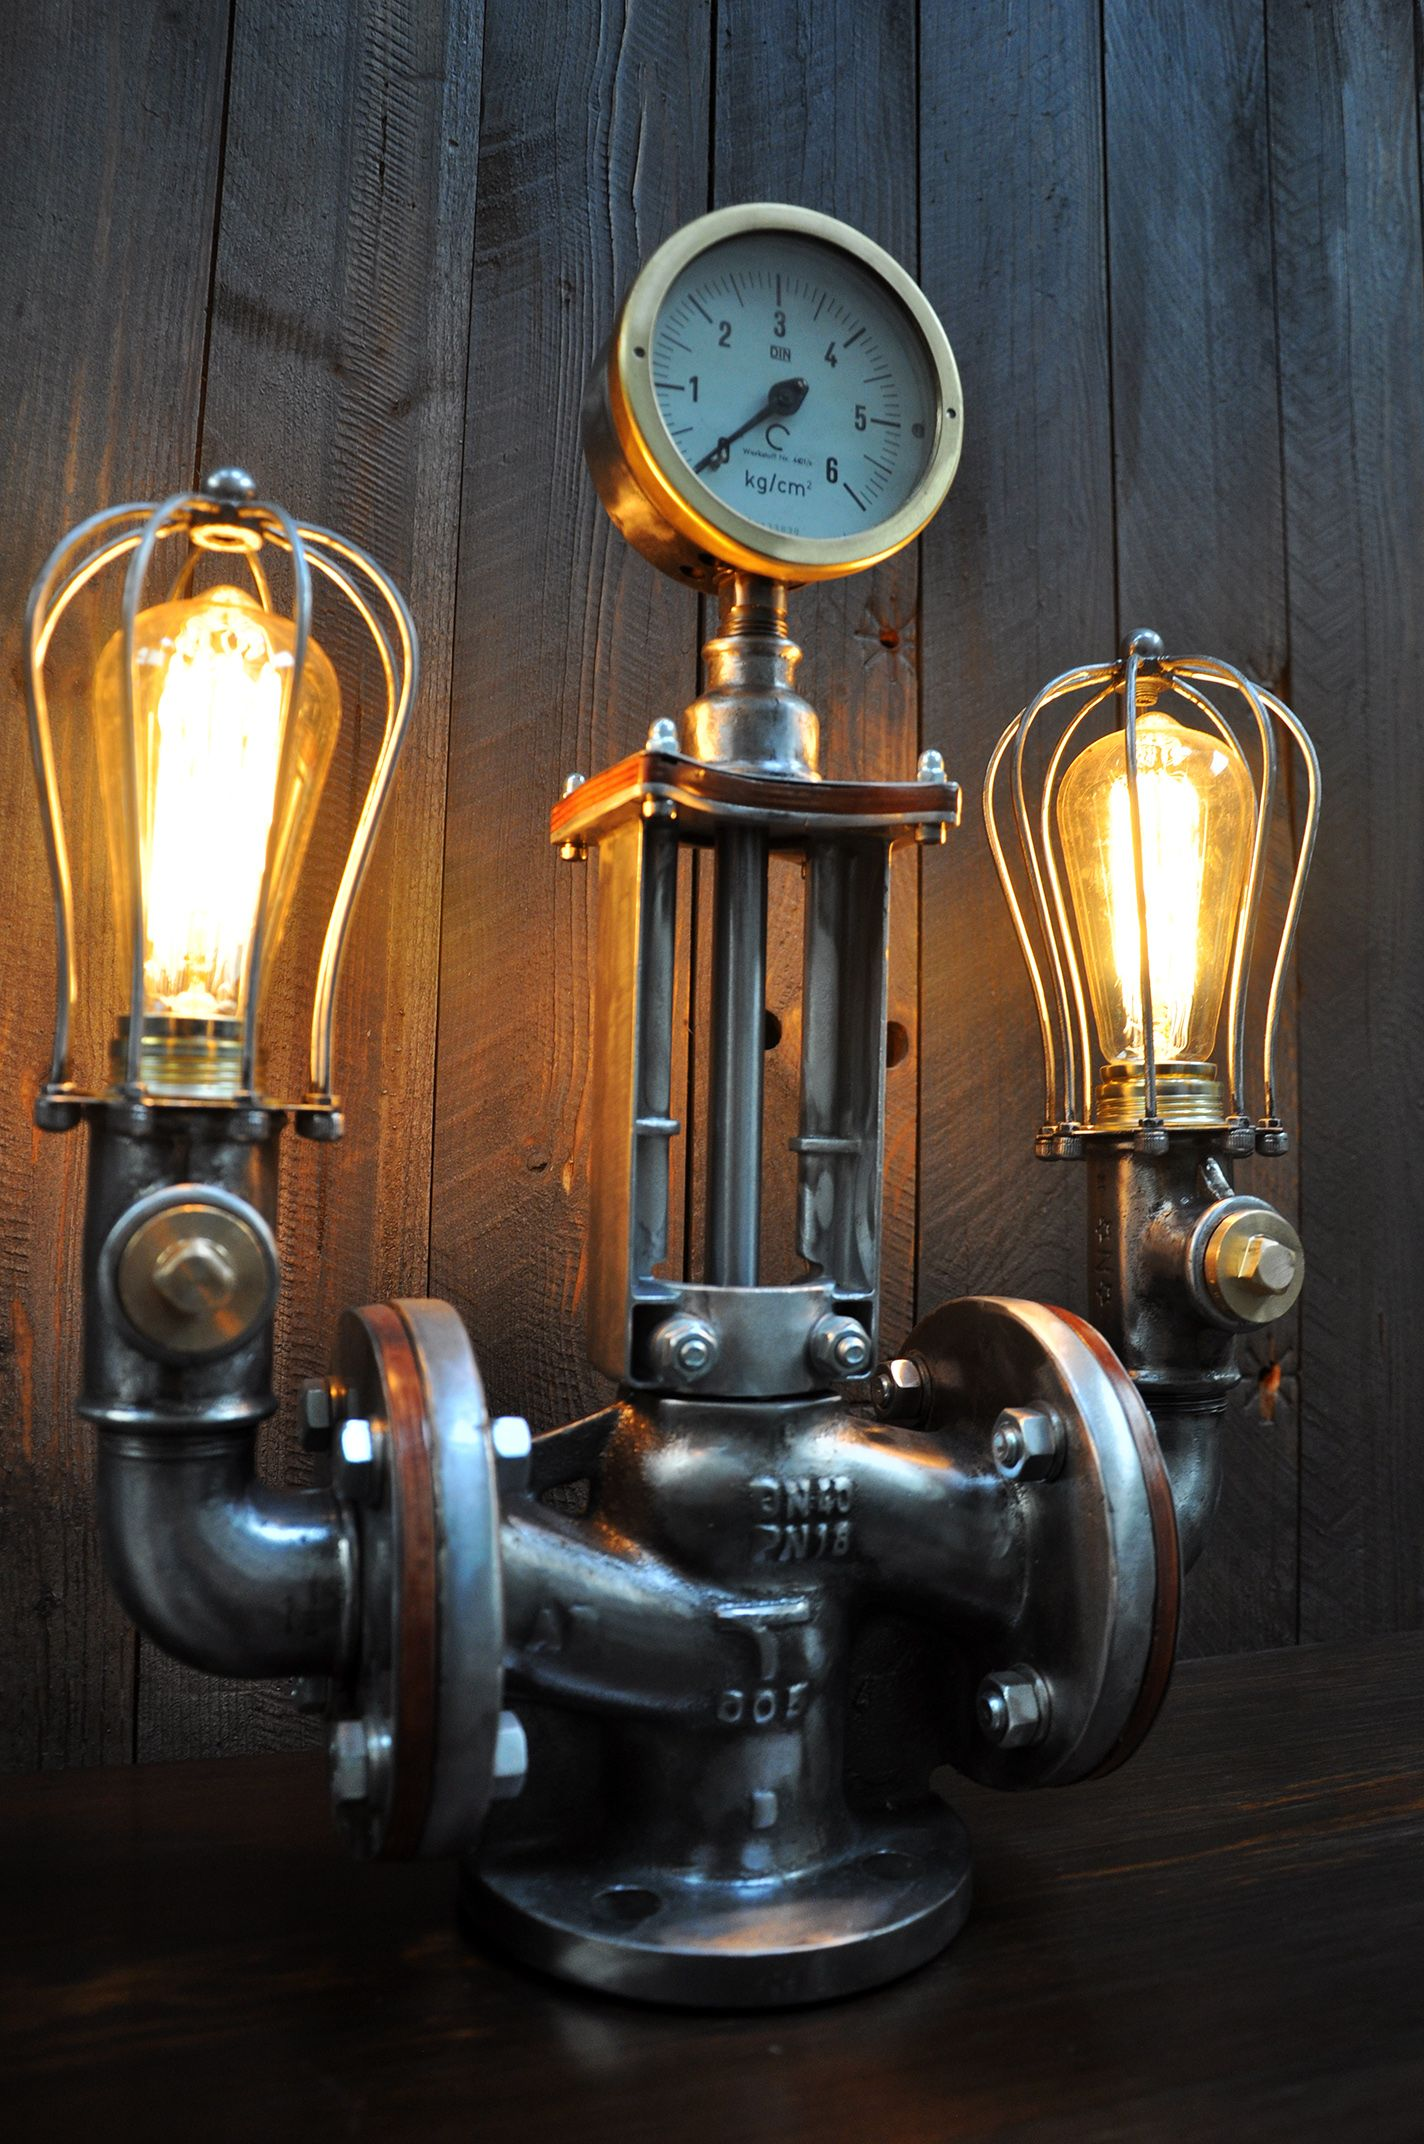 Lampen Im Industriedesign Industriedesign Lampe, Steampunk, Lamp | Industriedesign Lampen, Industrie, Lampe